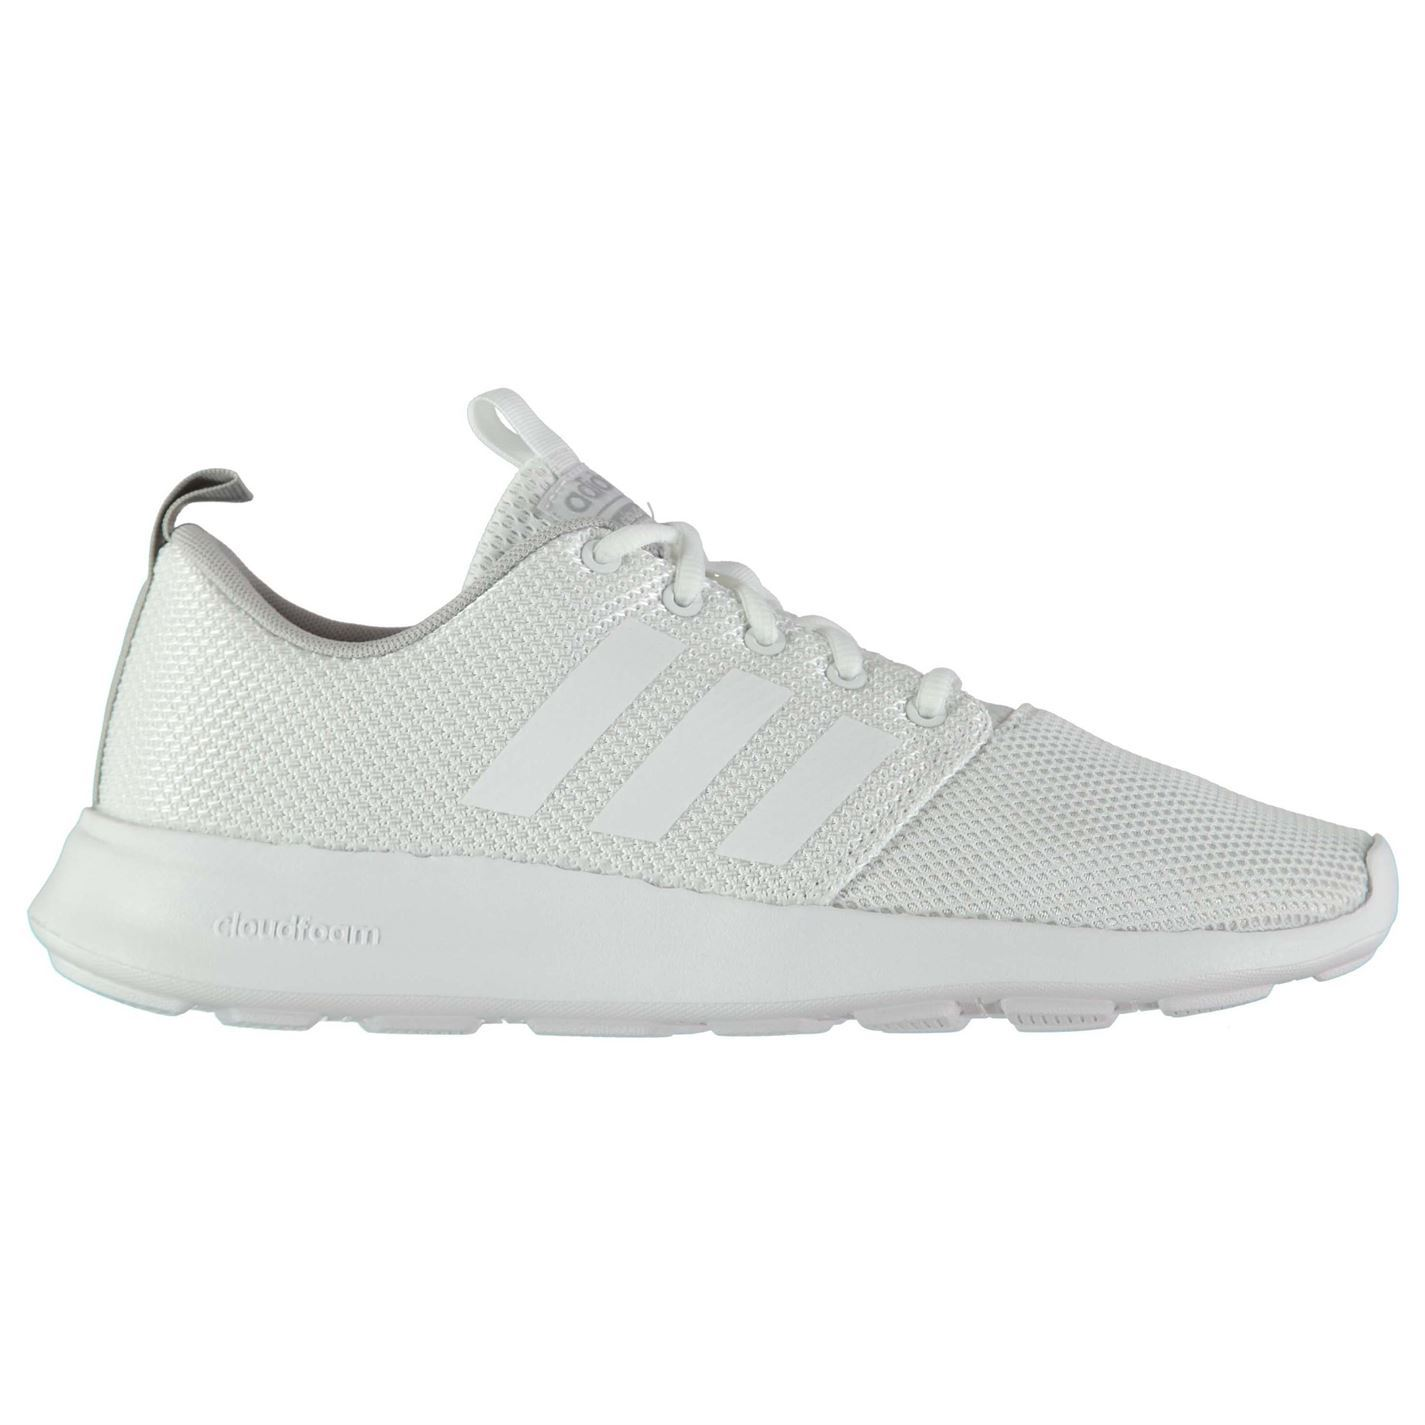 Image is loading adidas-Cloudfoam-Swift-Racer-Trainers-Mens-White-Athletic-